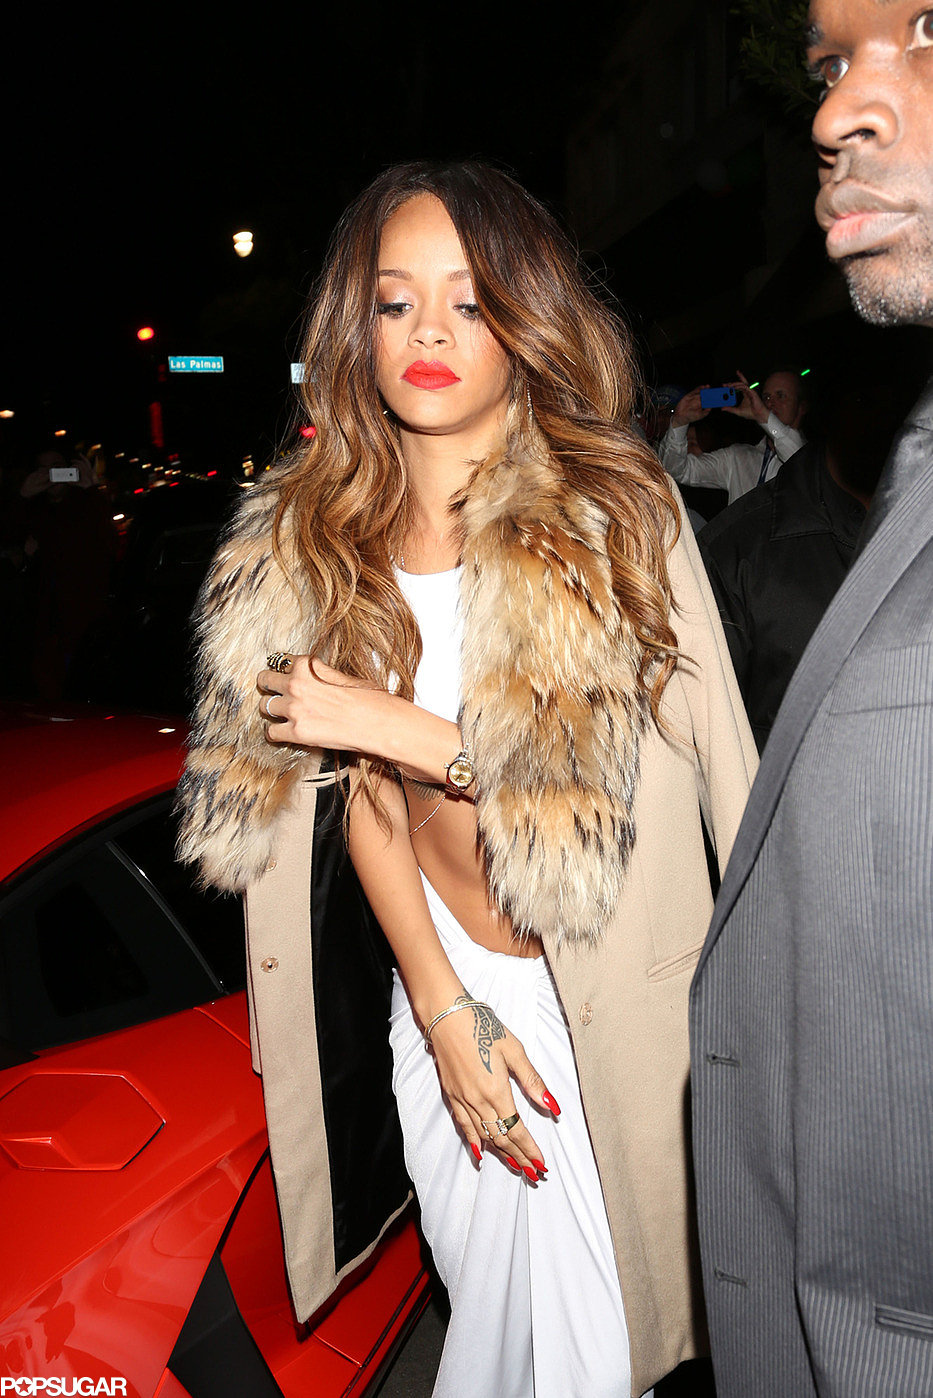 Rihanna attended a Grammys afterparty in a white dress.